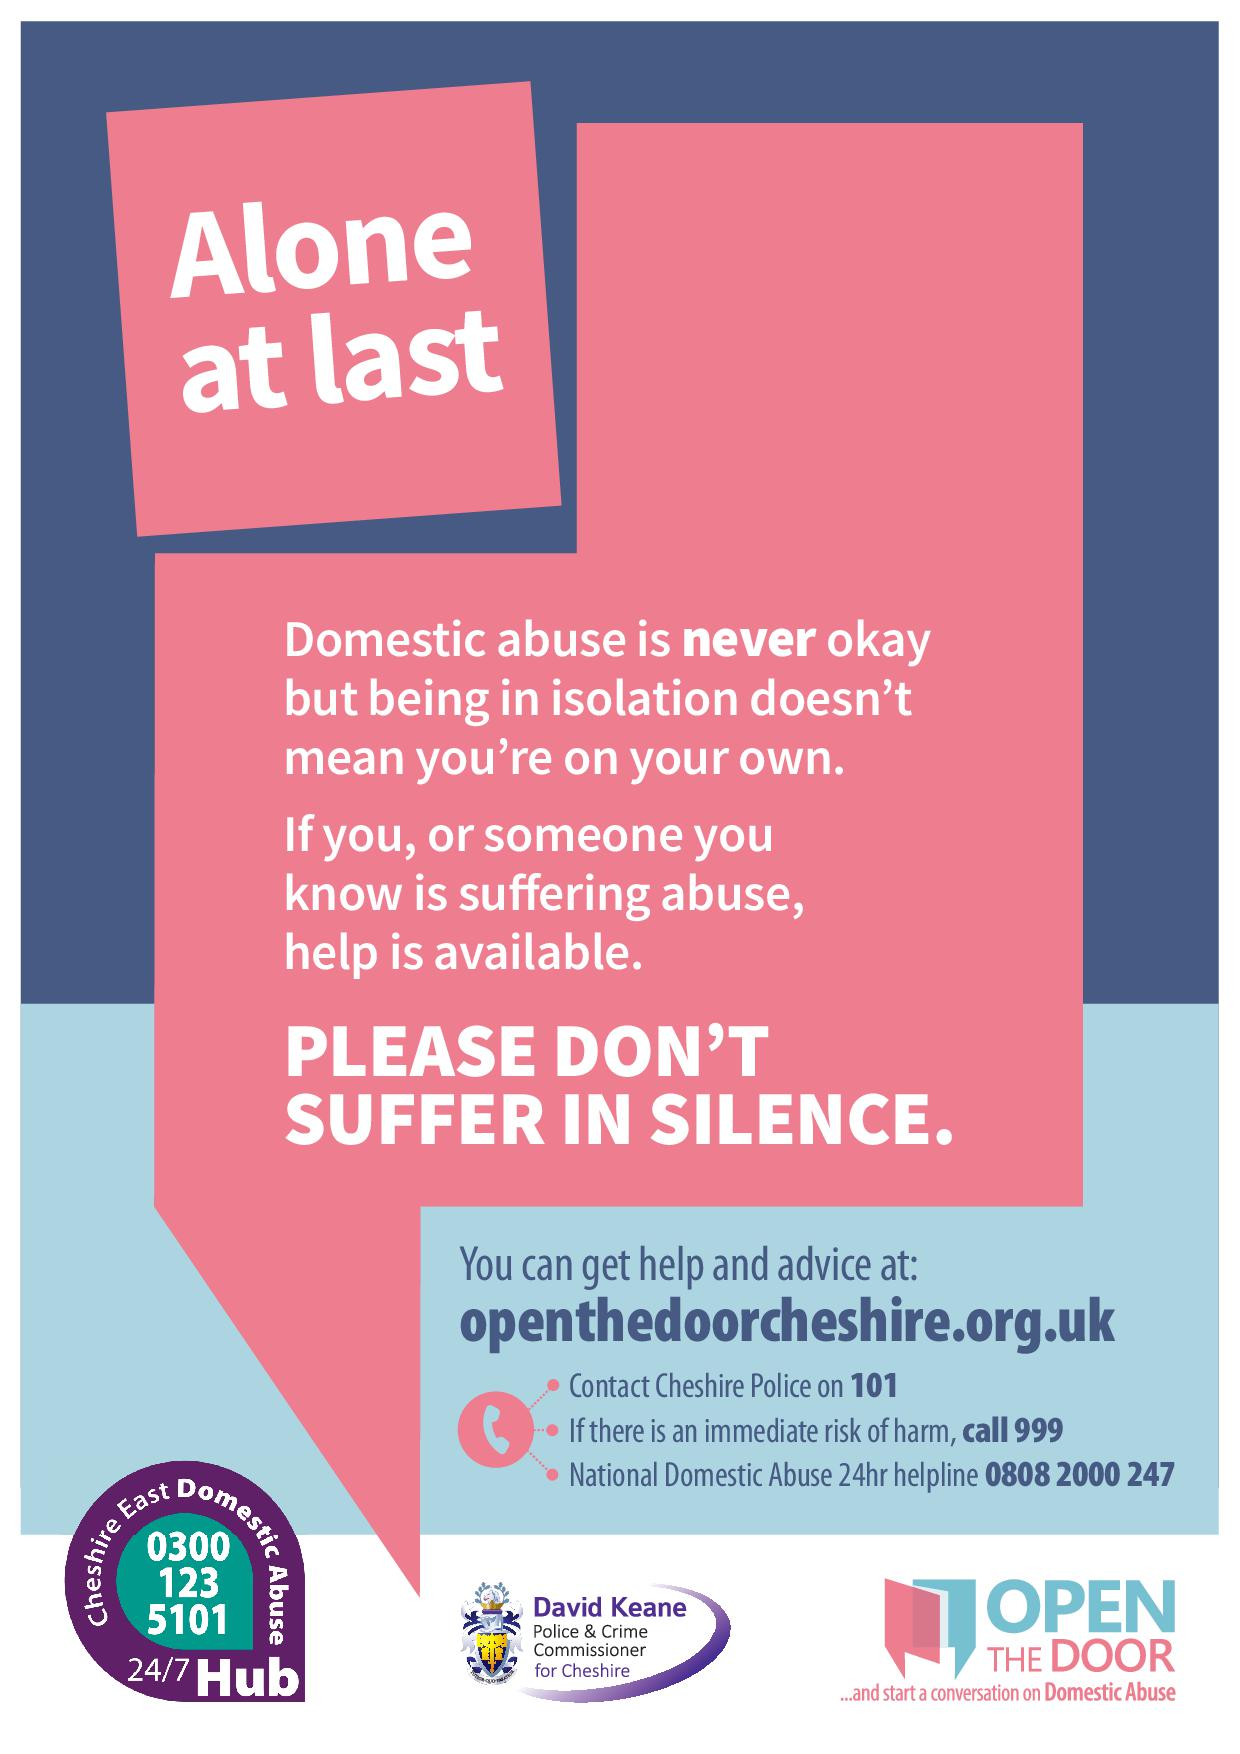 Chelford Parish Council Domestic Abuse Support